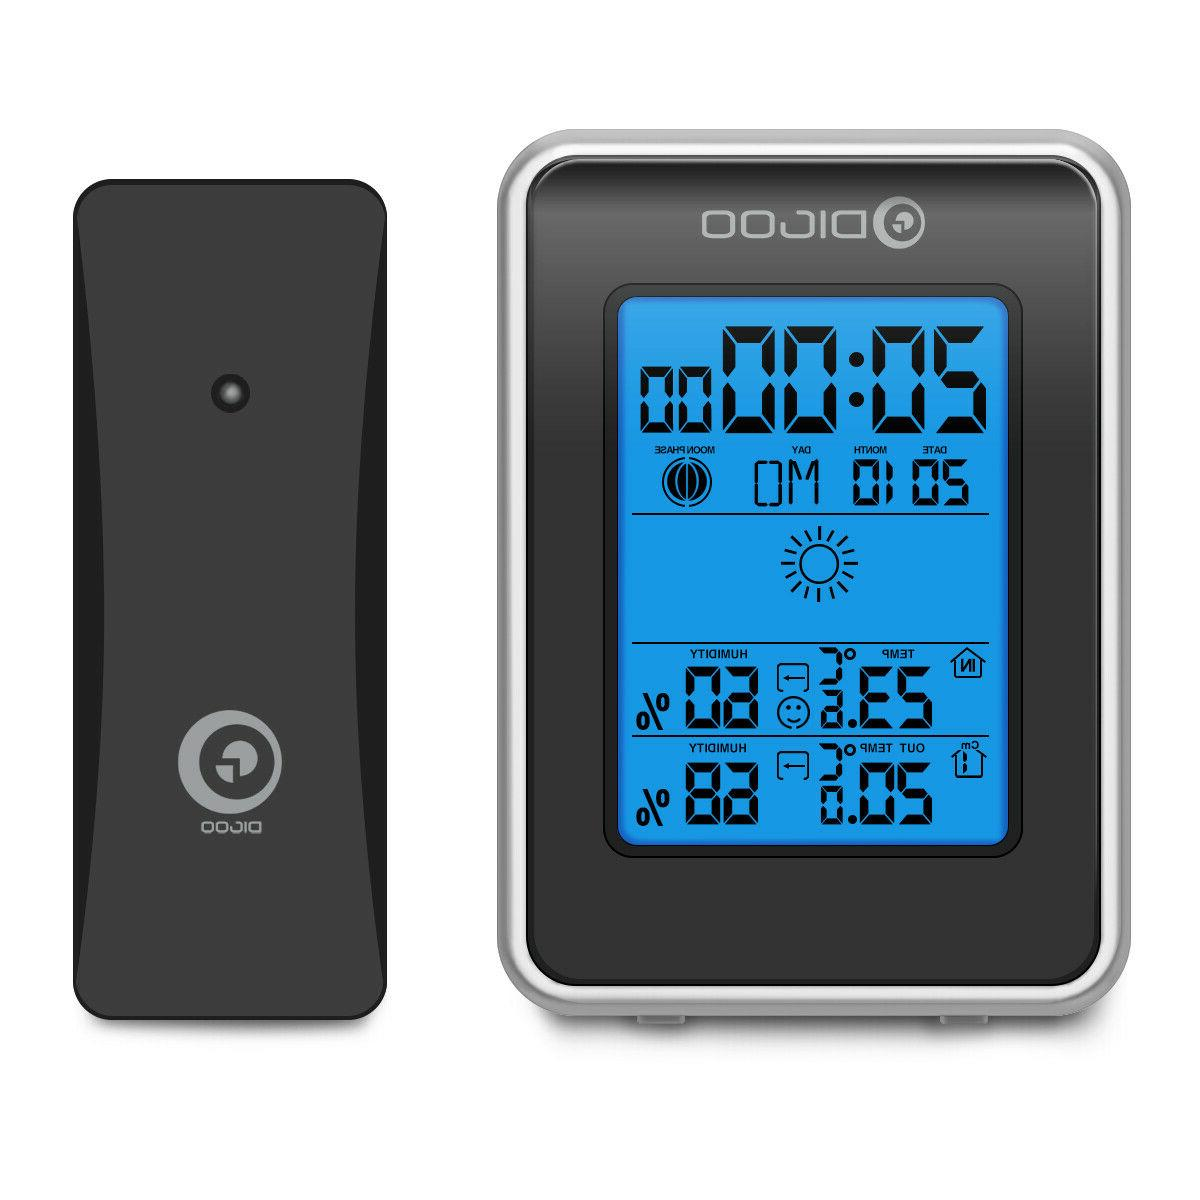 Digoo DG-TH1981 Thermometer Moon Phase W/Outdoor